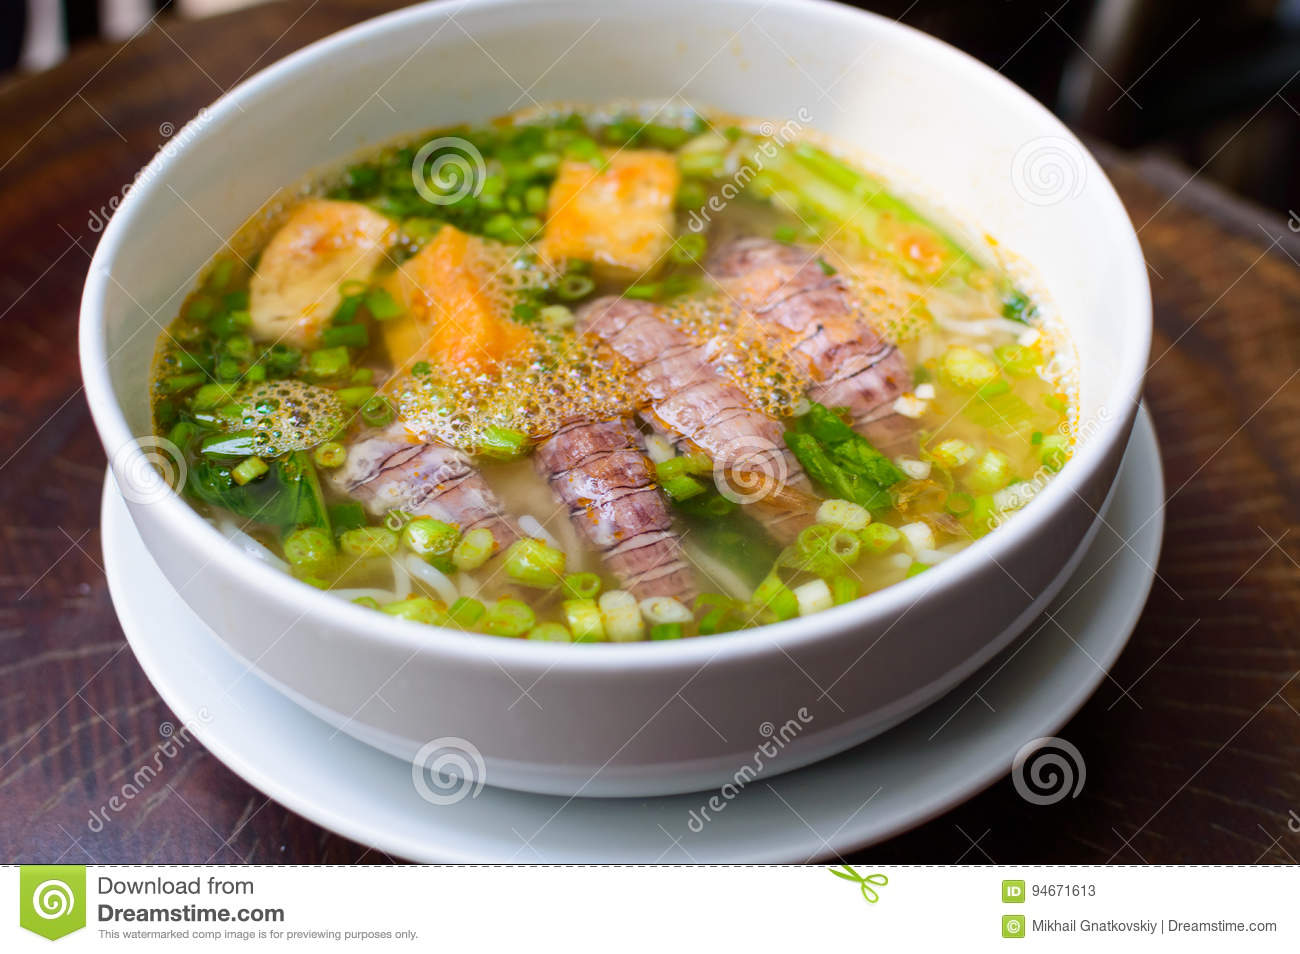 Pho Tom Vietnamese Soup stock image  Image of lime, cooking